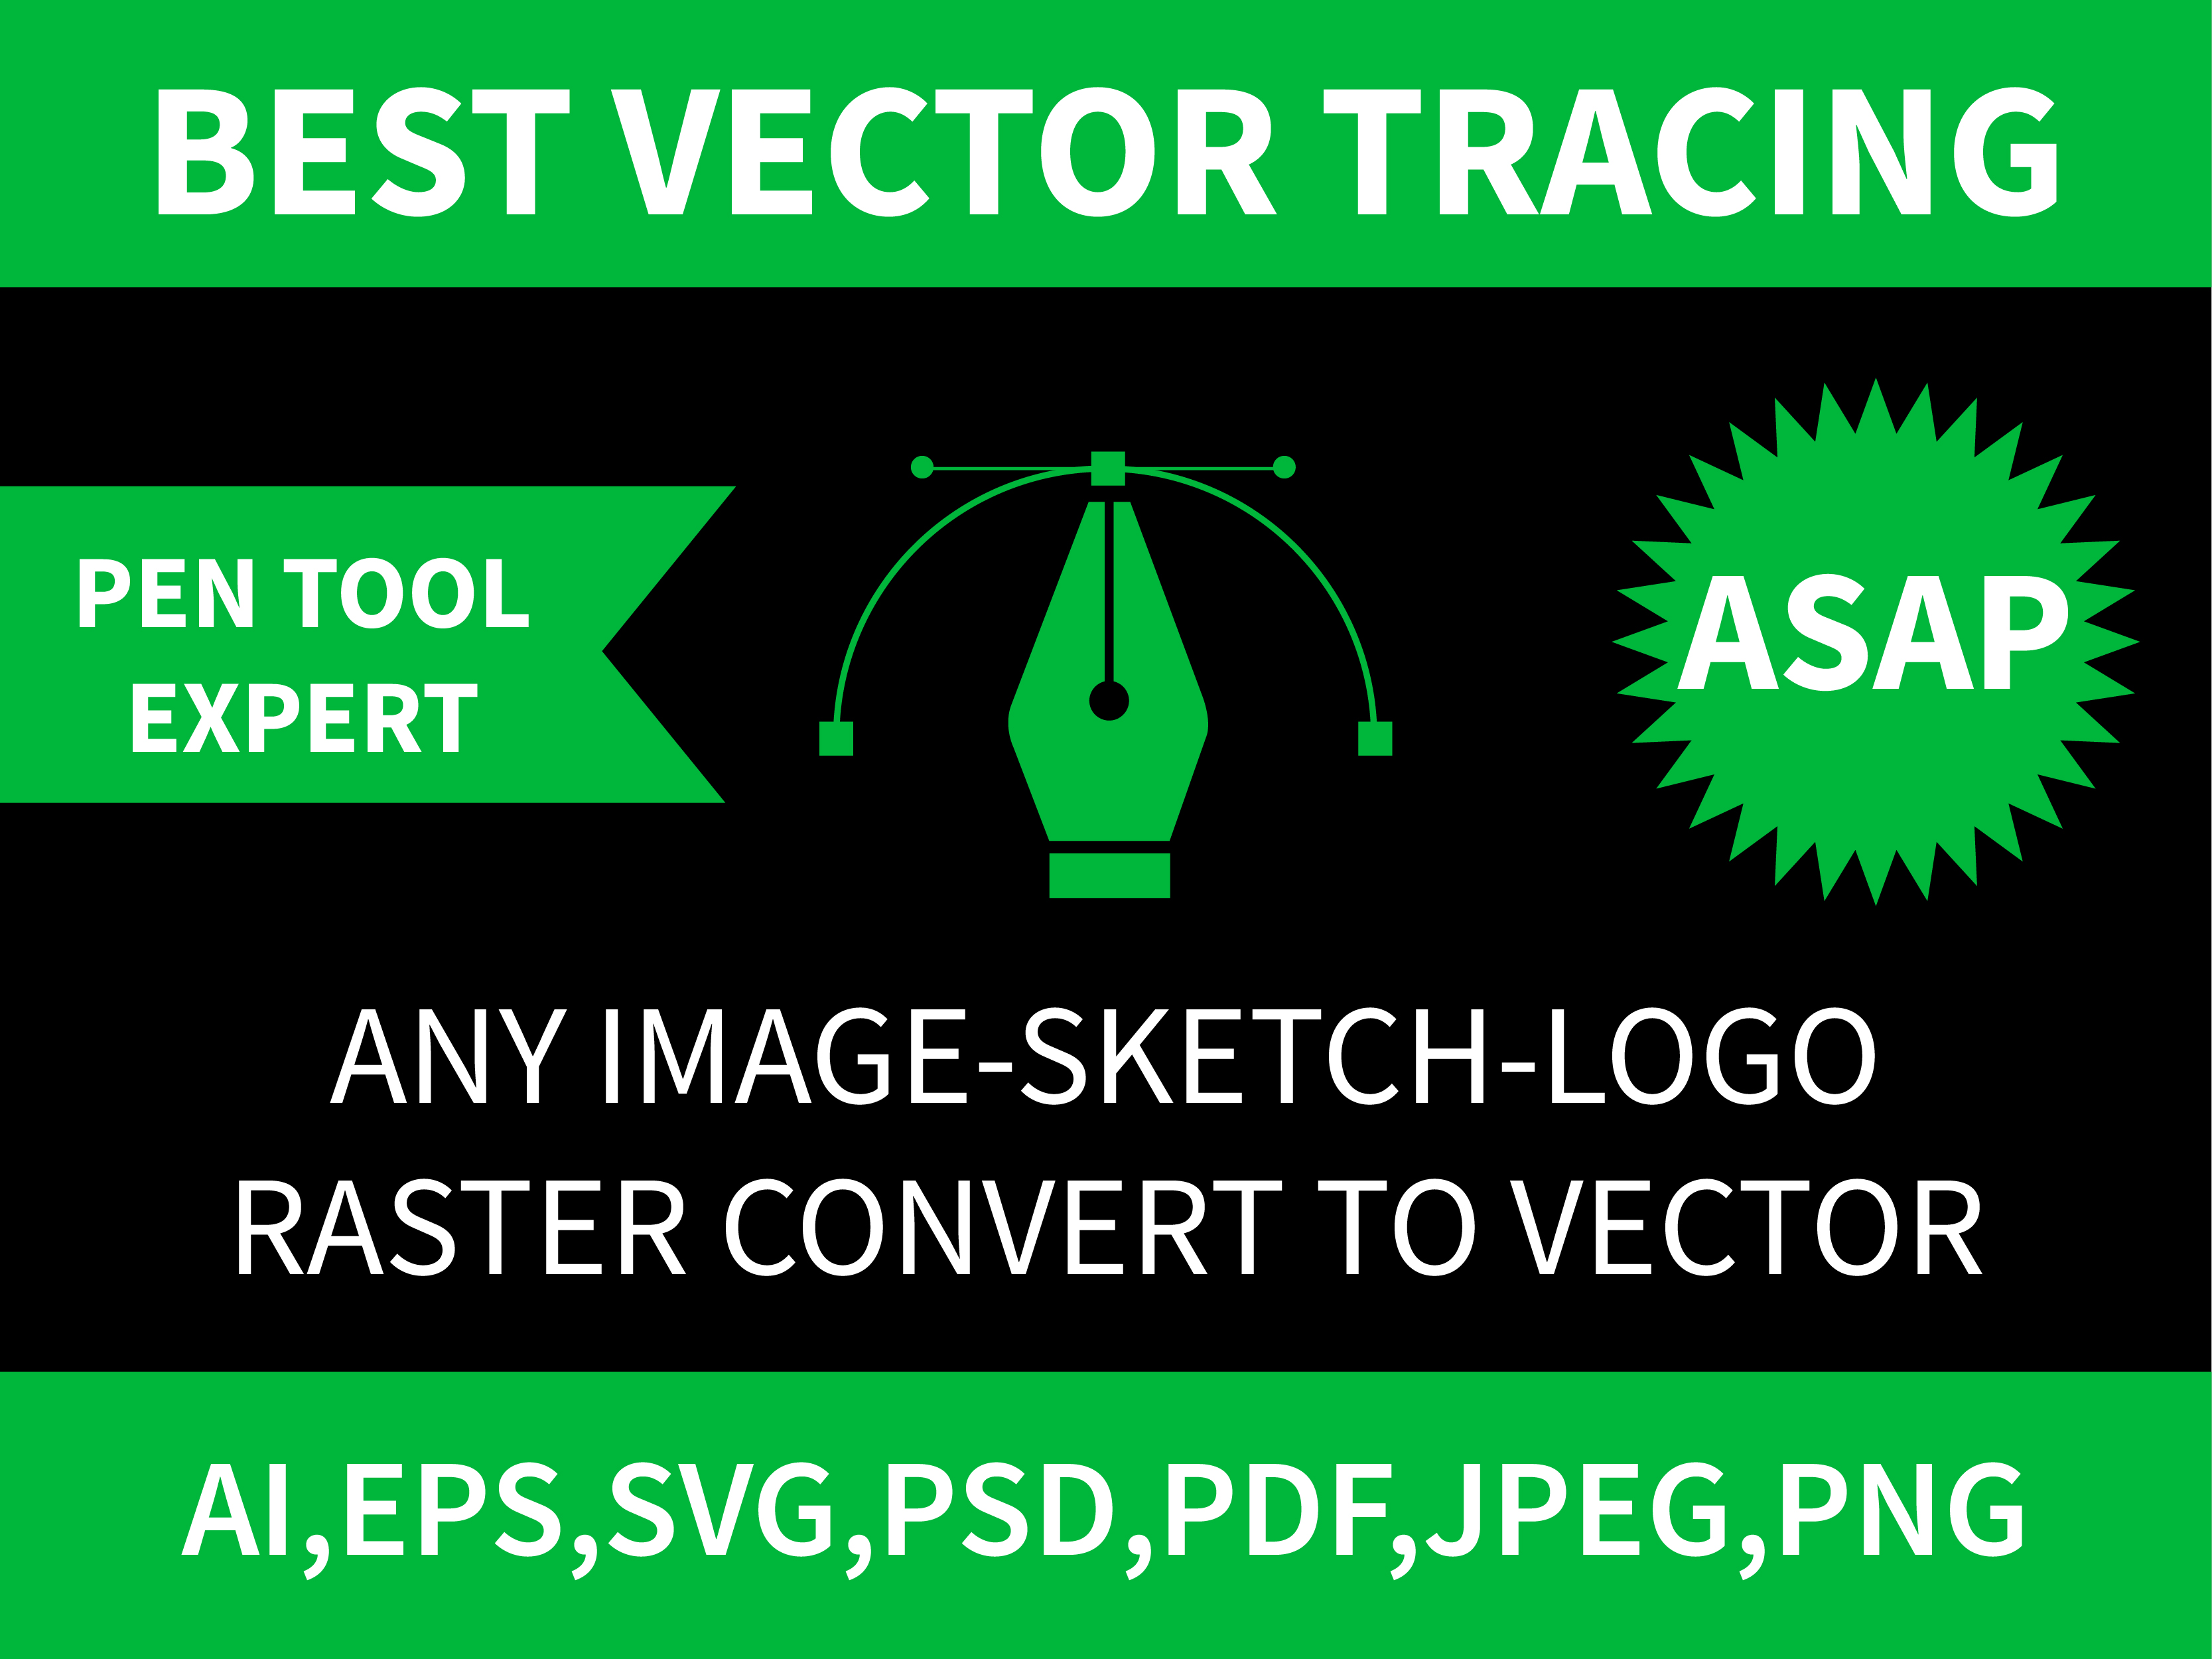 I will professionally convert any image to high resolution vector